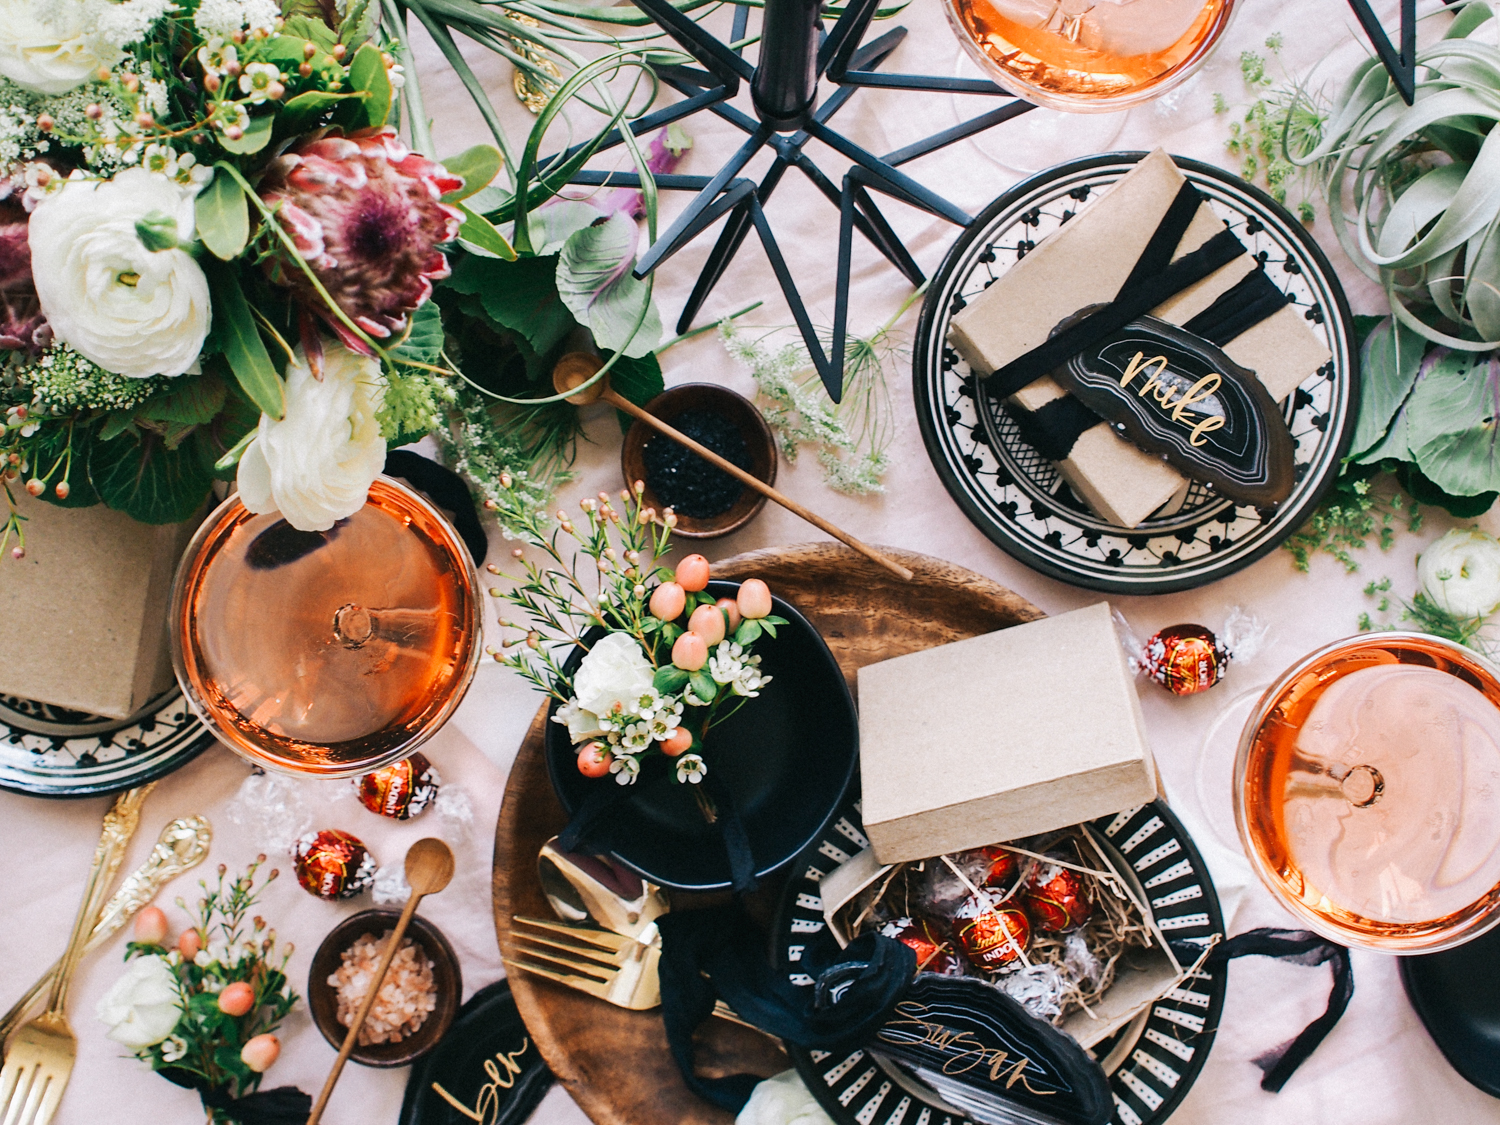 Easy entertaining ideas for the holidays | A Fabulous Fete